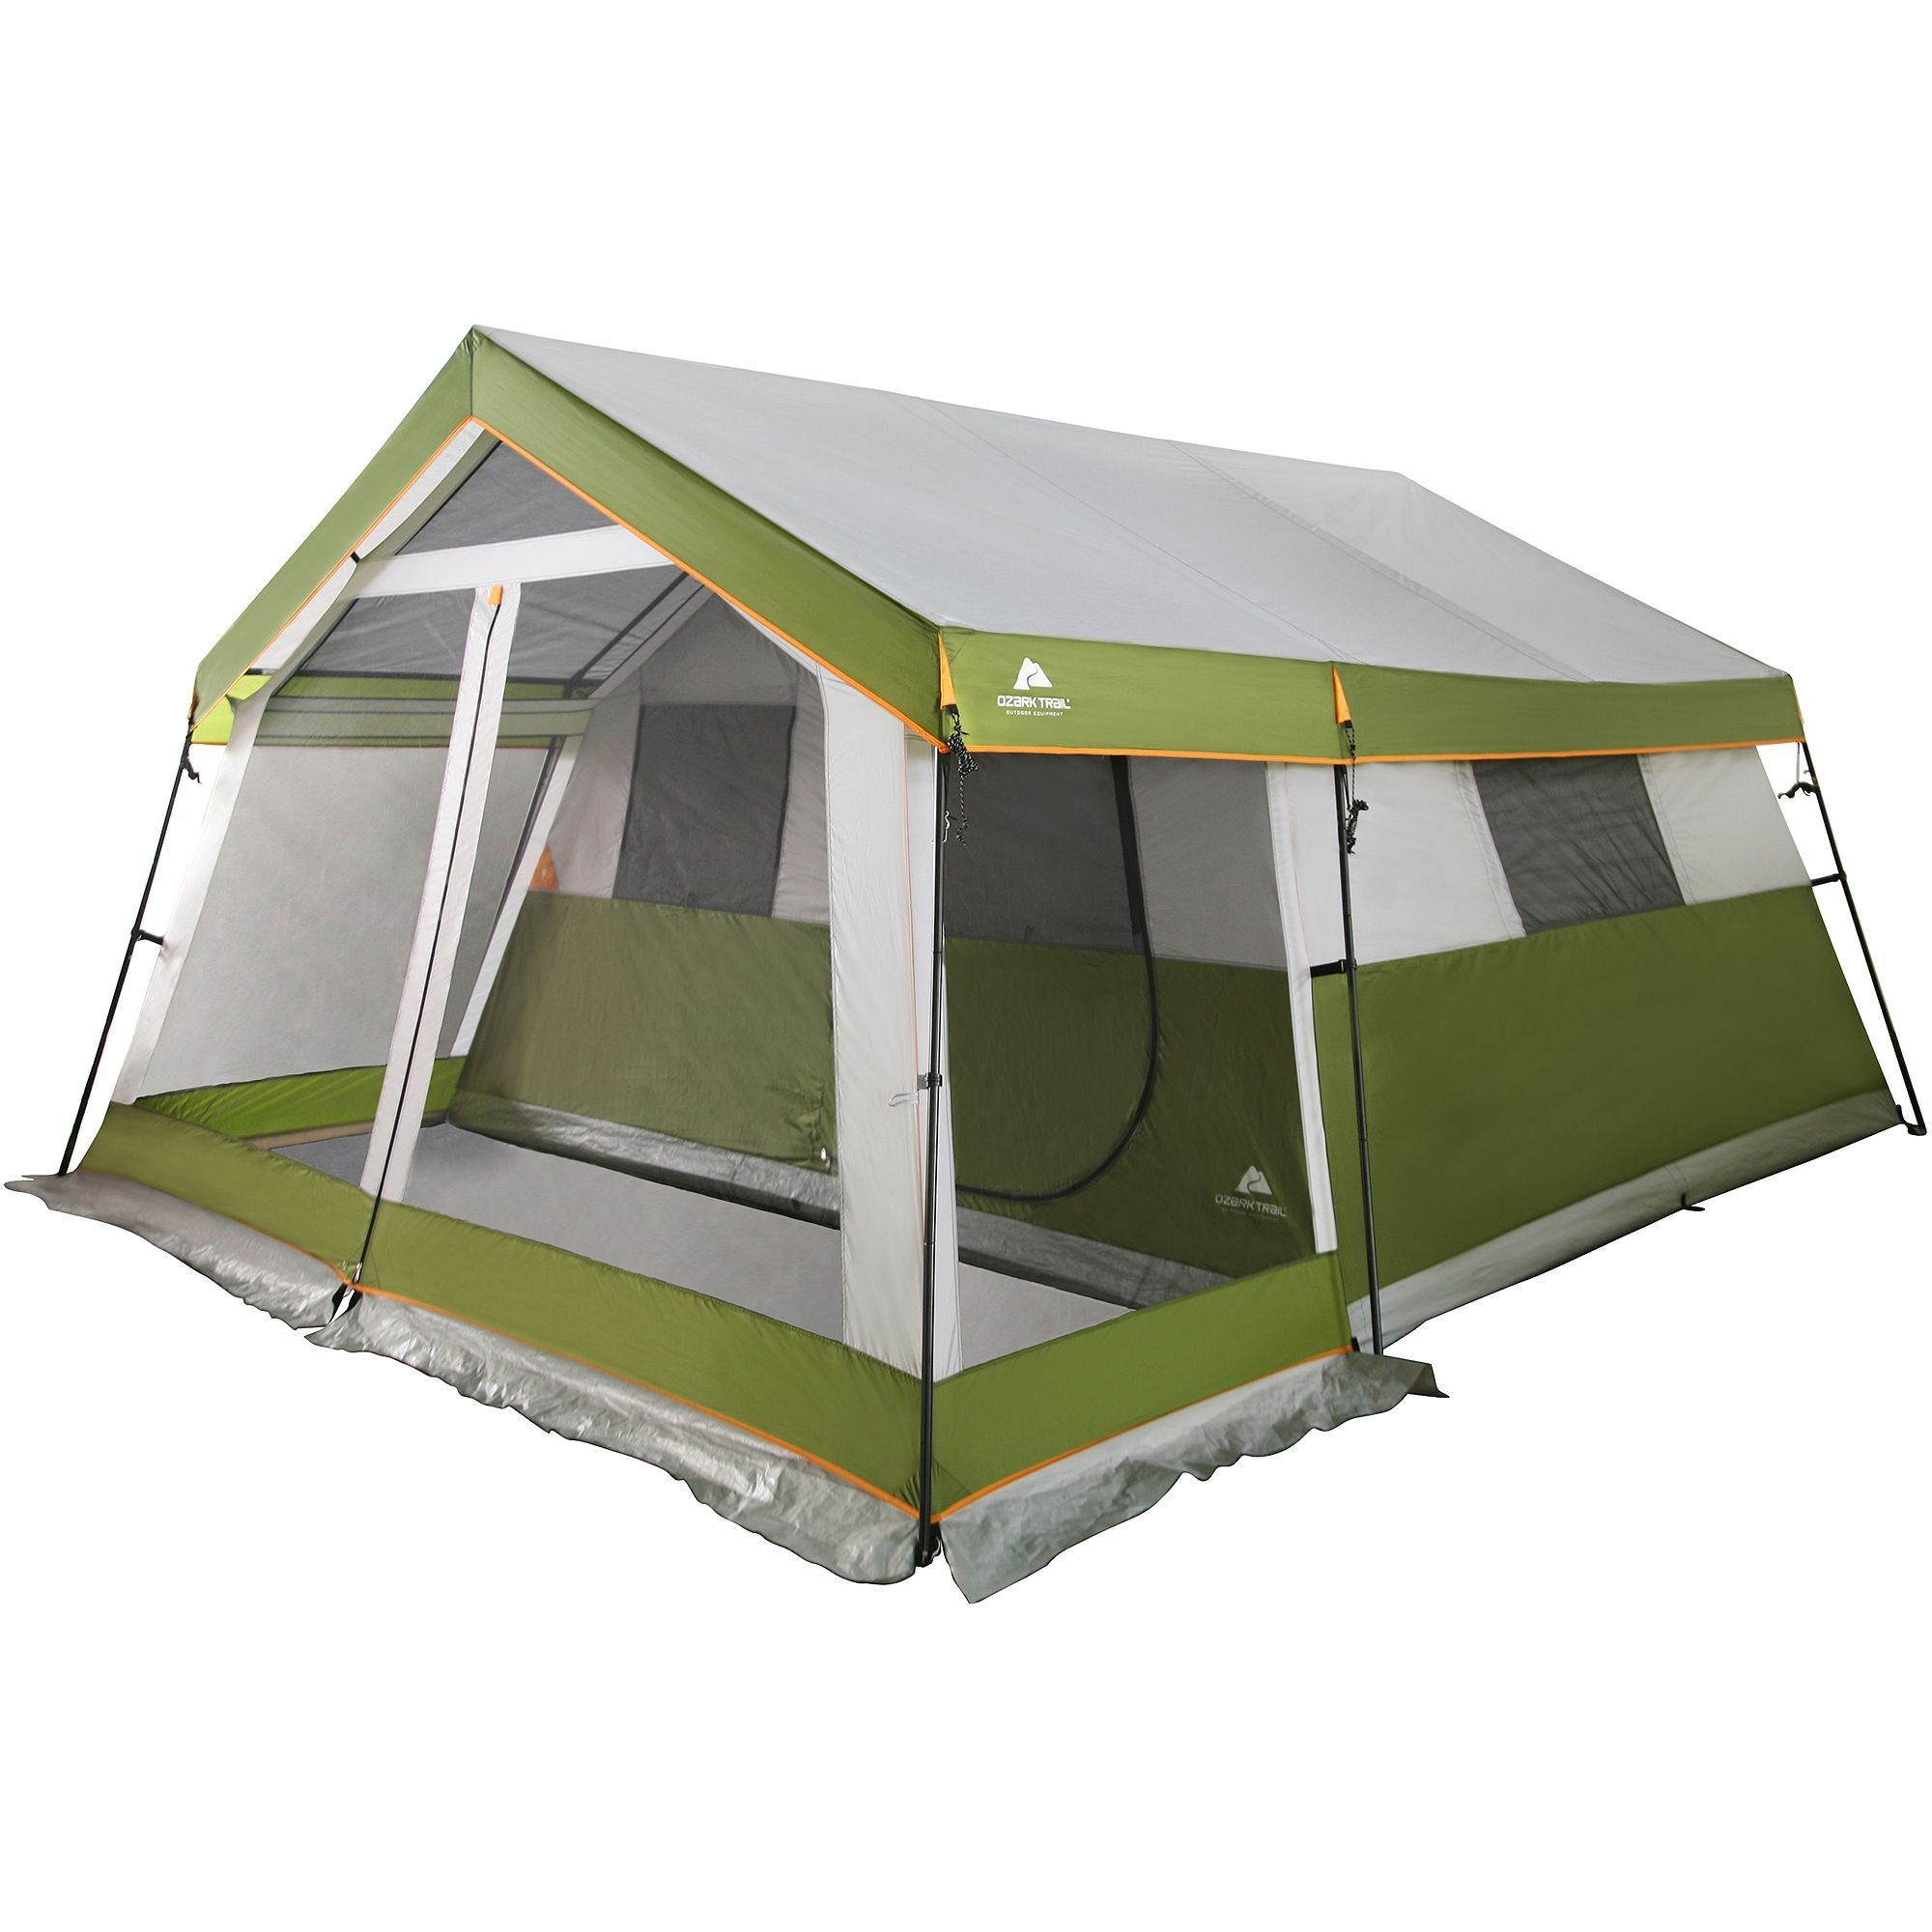 Ozark Trail 12 Person Cabin Tent With Screen Porch Walmartcom Frame Tenda Fiber Untuk Dome Camping